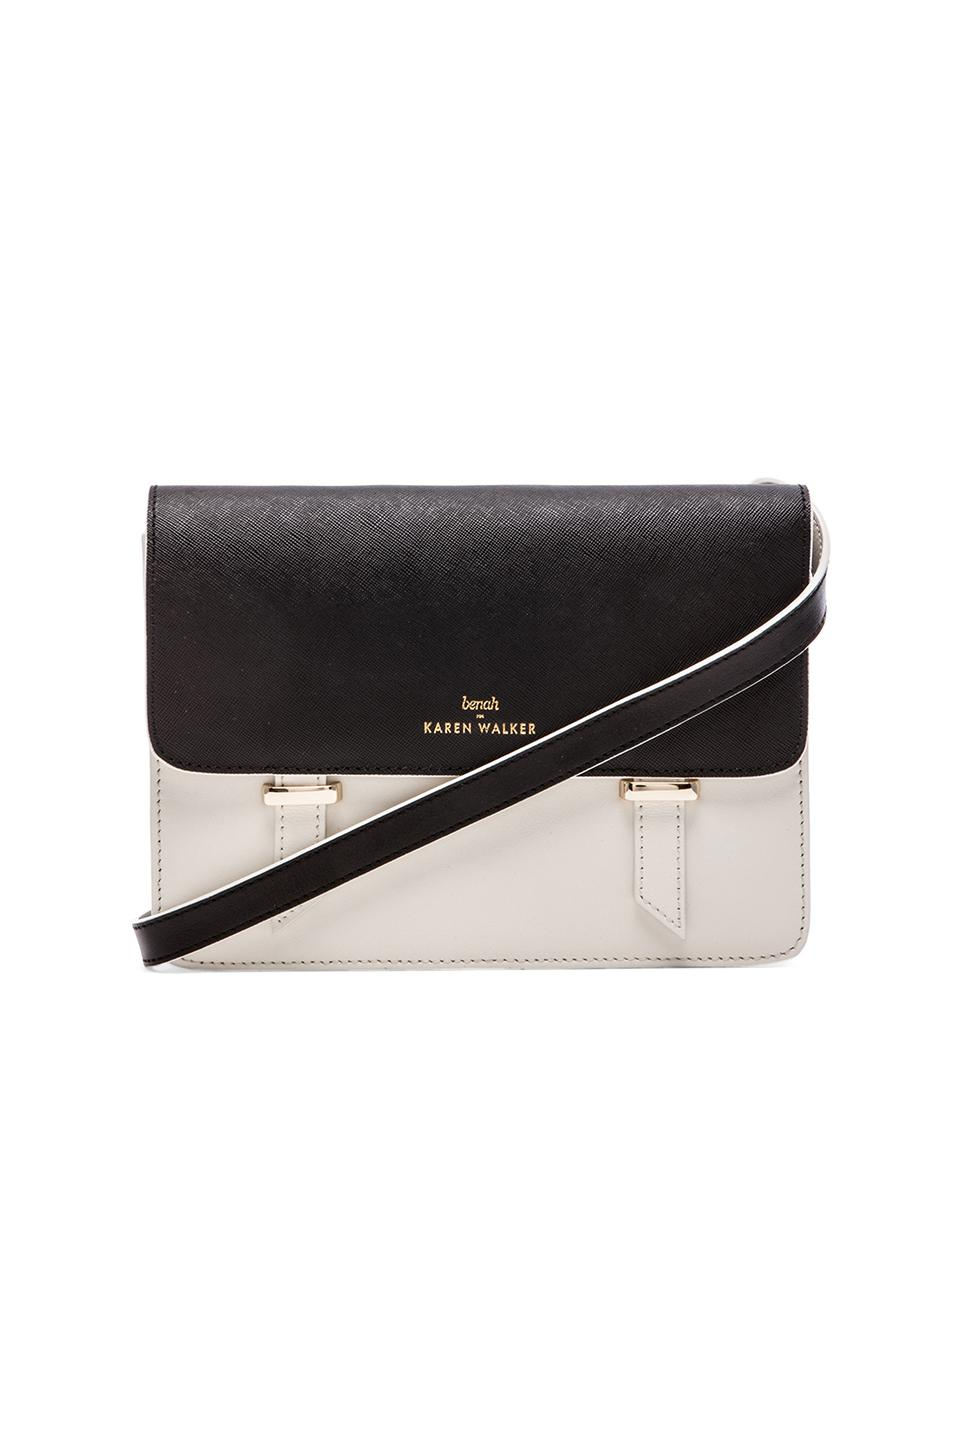 Karen Walker Sloane Satchel in Black & Ivory